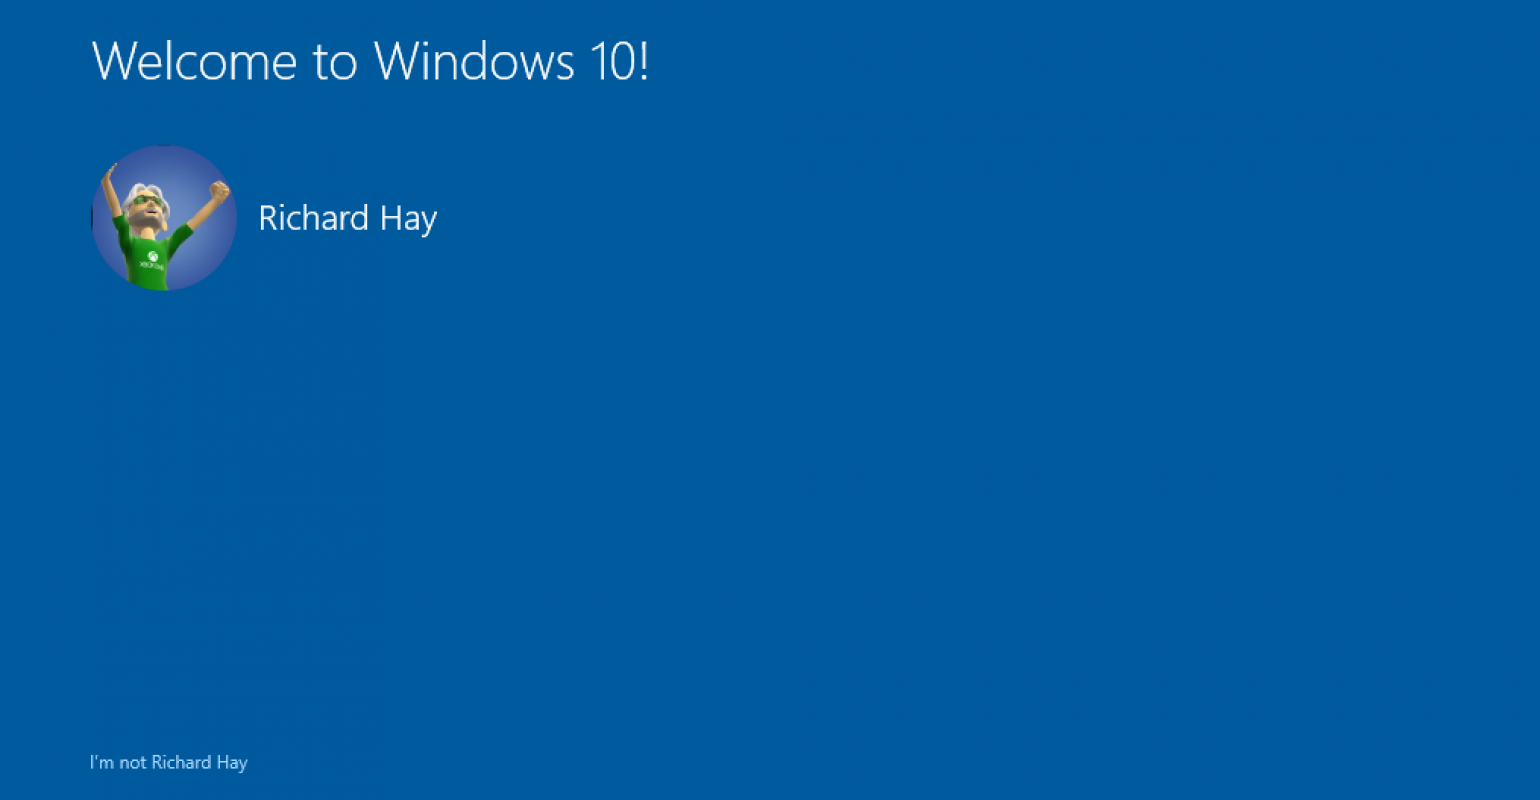 Windows 10 Update Assistant 1.4.9200.23072 [Actualice a la última versión de Windows] Windows10updateassistant%20%2812%29_0